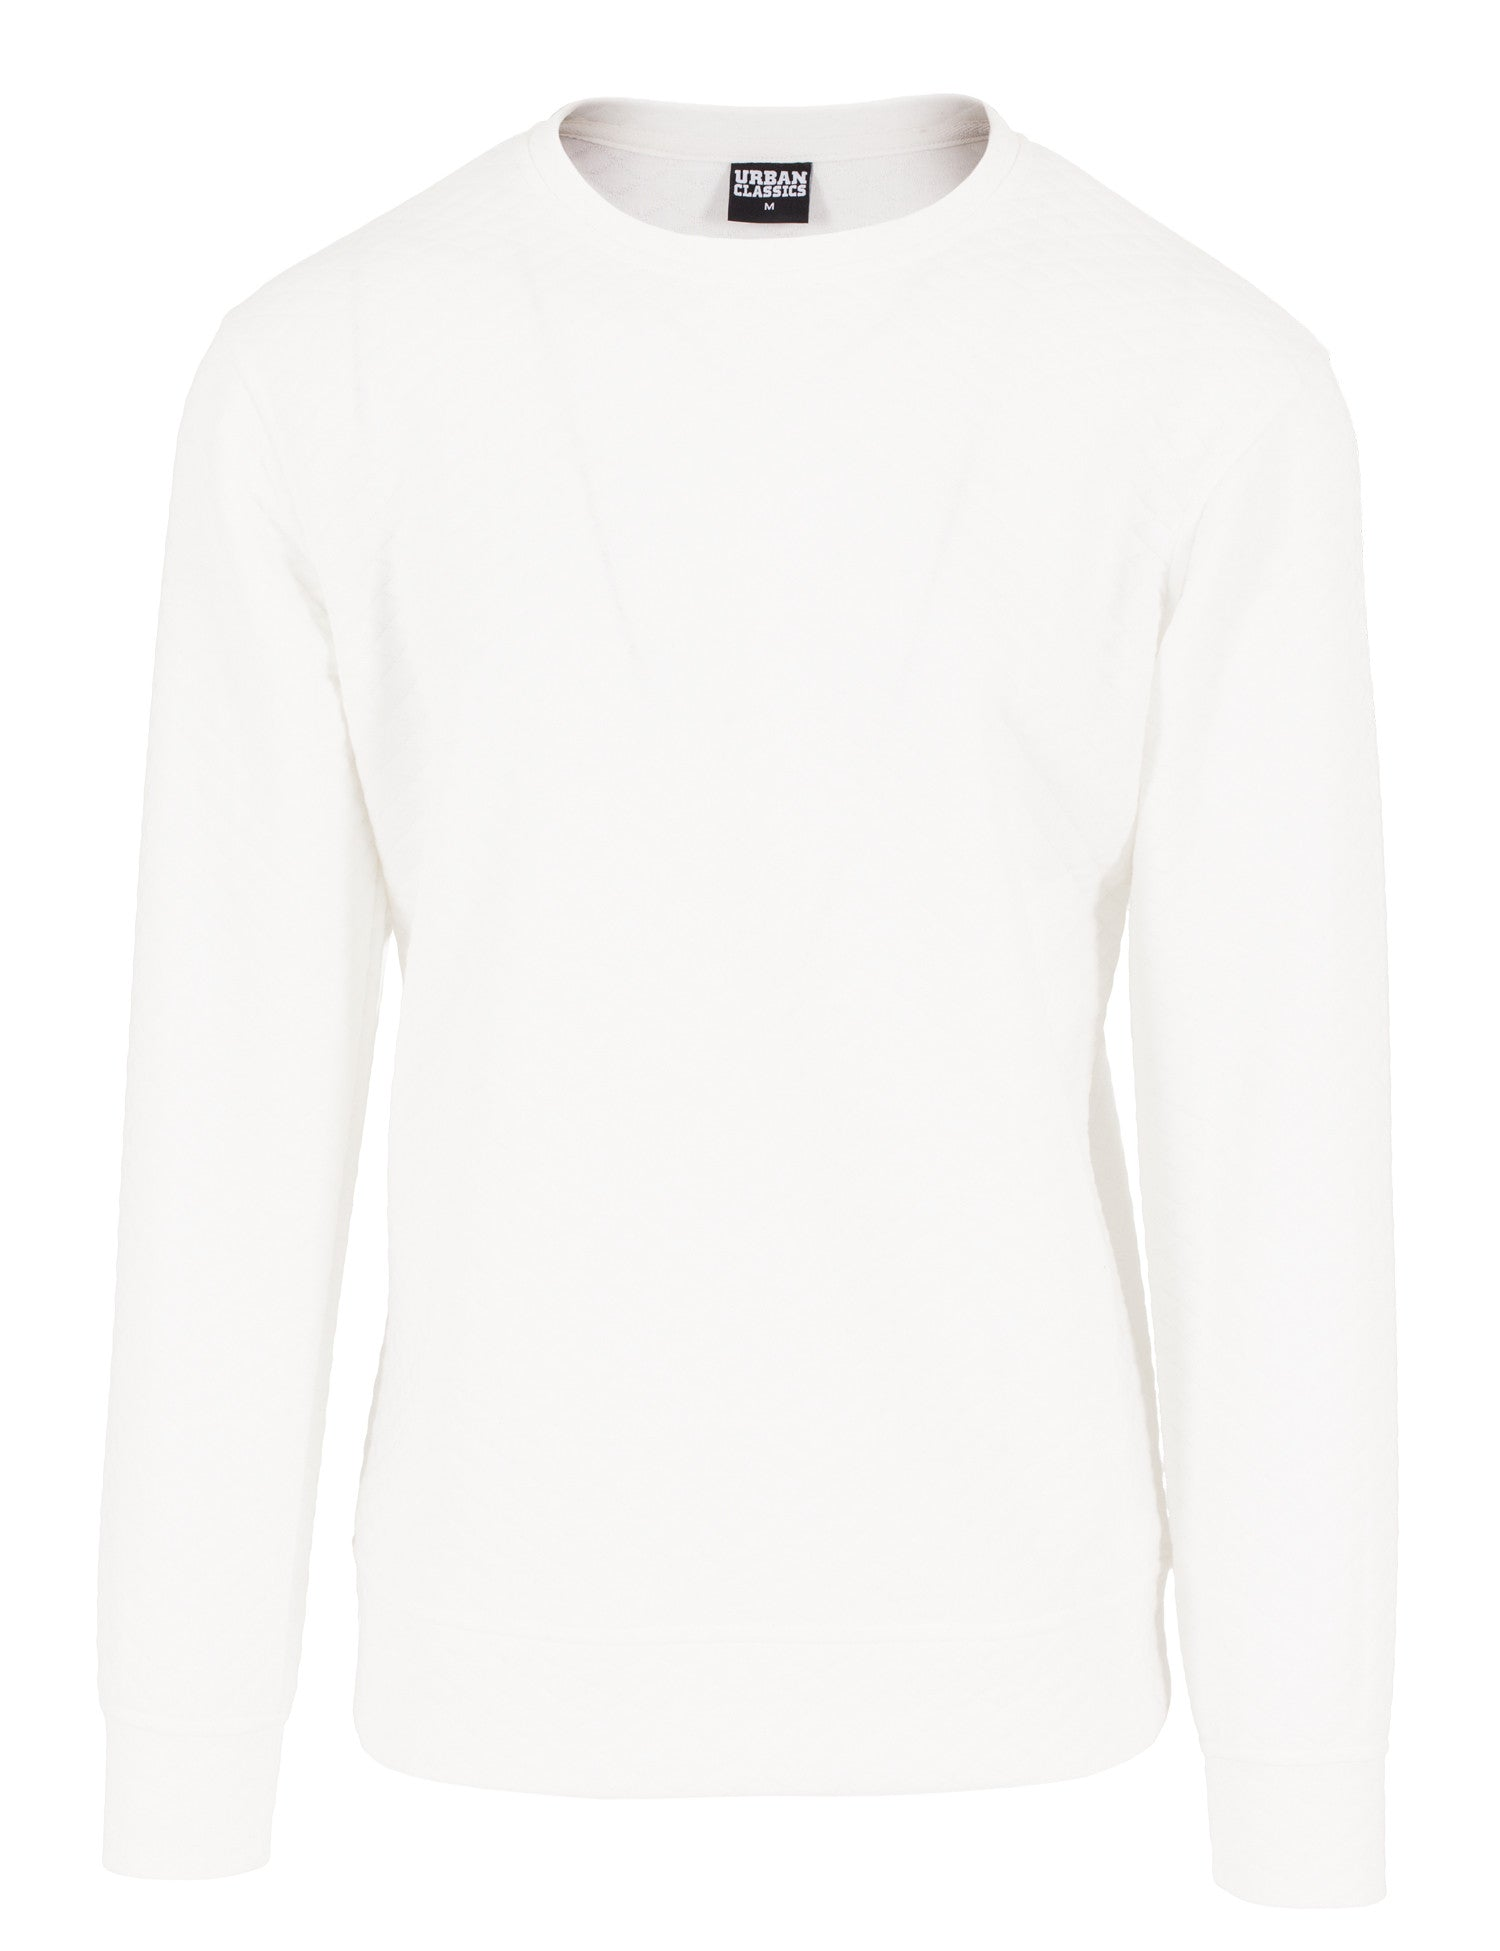 Diamond Quilt Crewneck TB1109 White